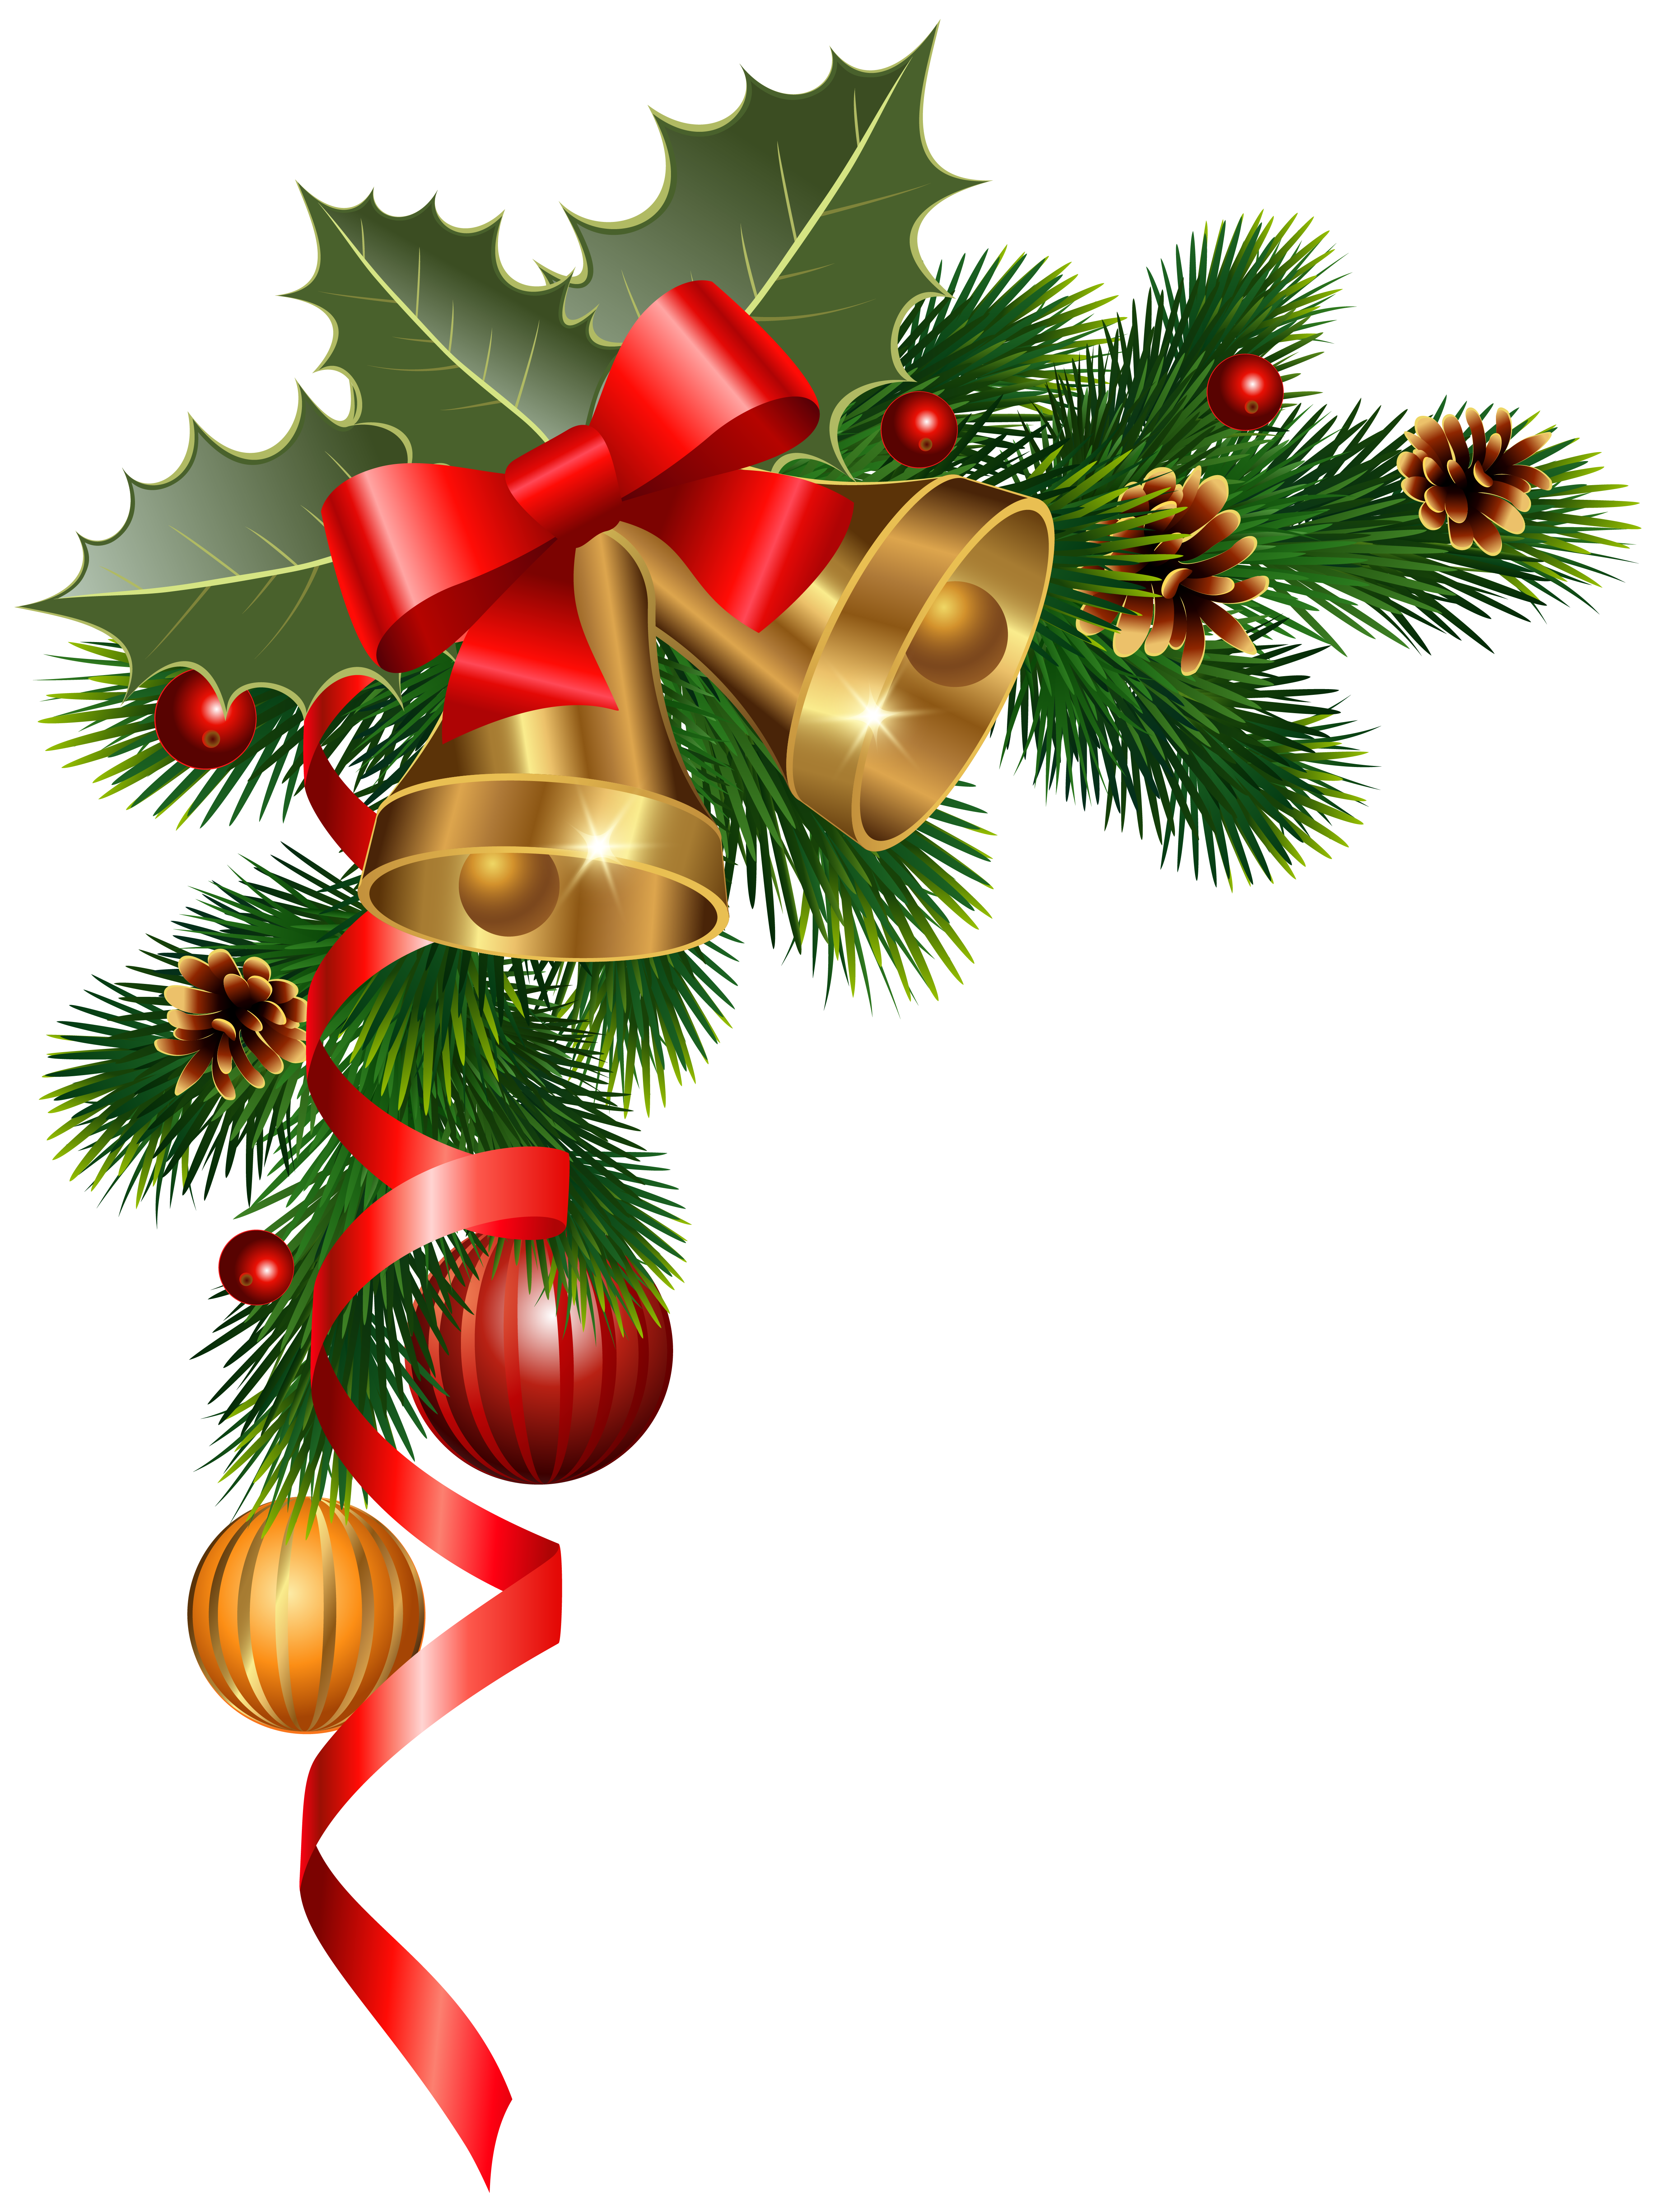 Christmas ornaments clipart border vector Christmas Corner Decoration PNG Clipart Image | Gallery ... vector